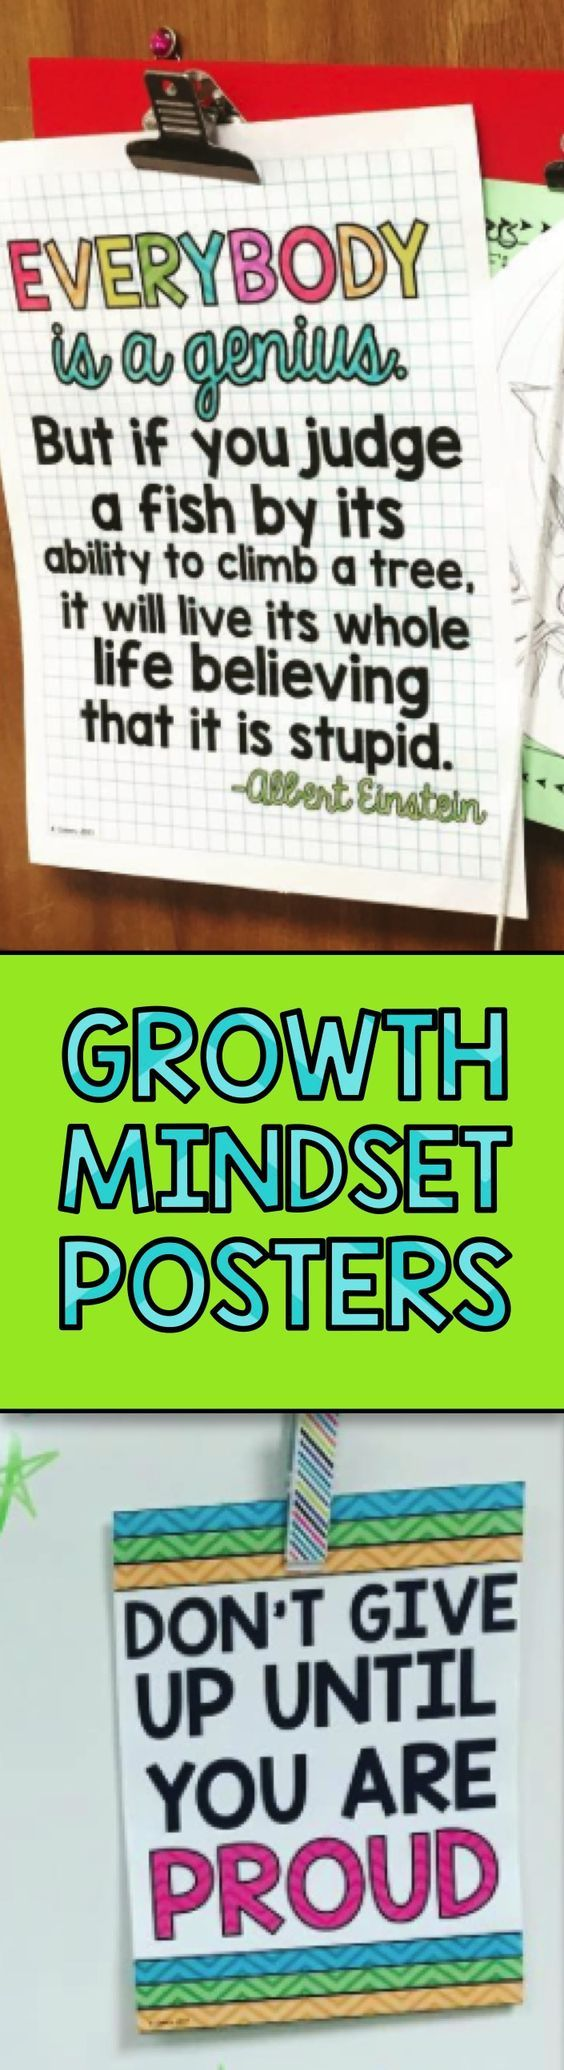 Growth Mindset Posters for the classroom